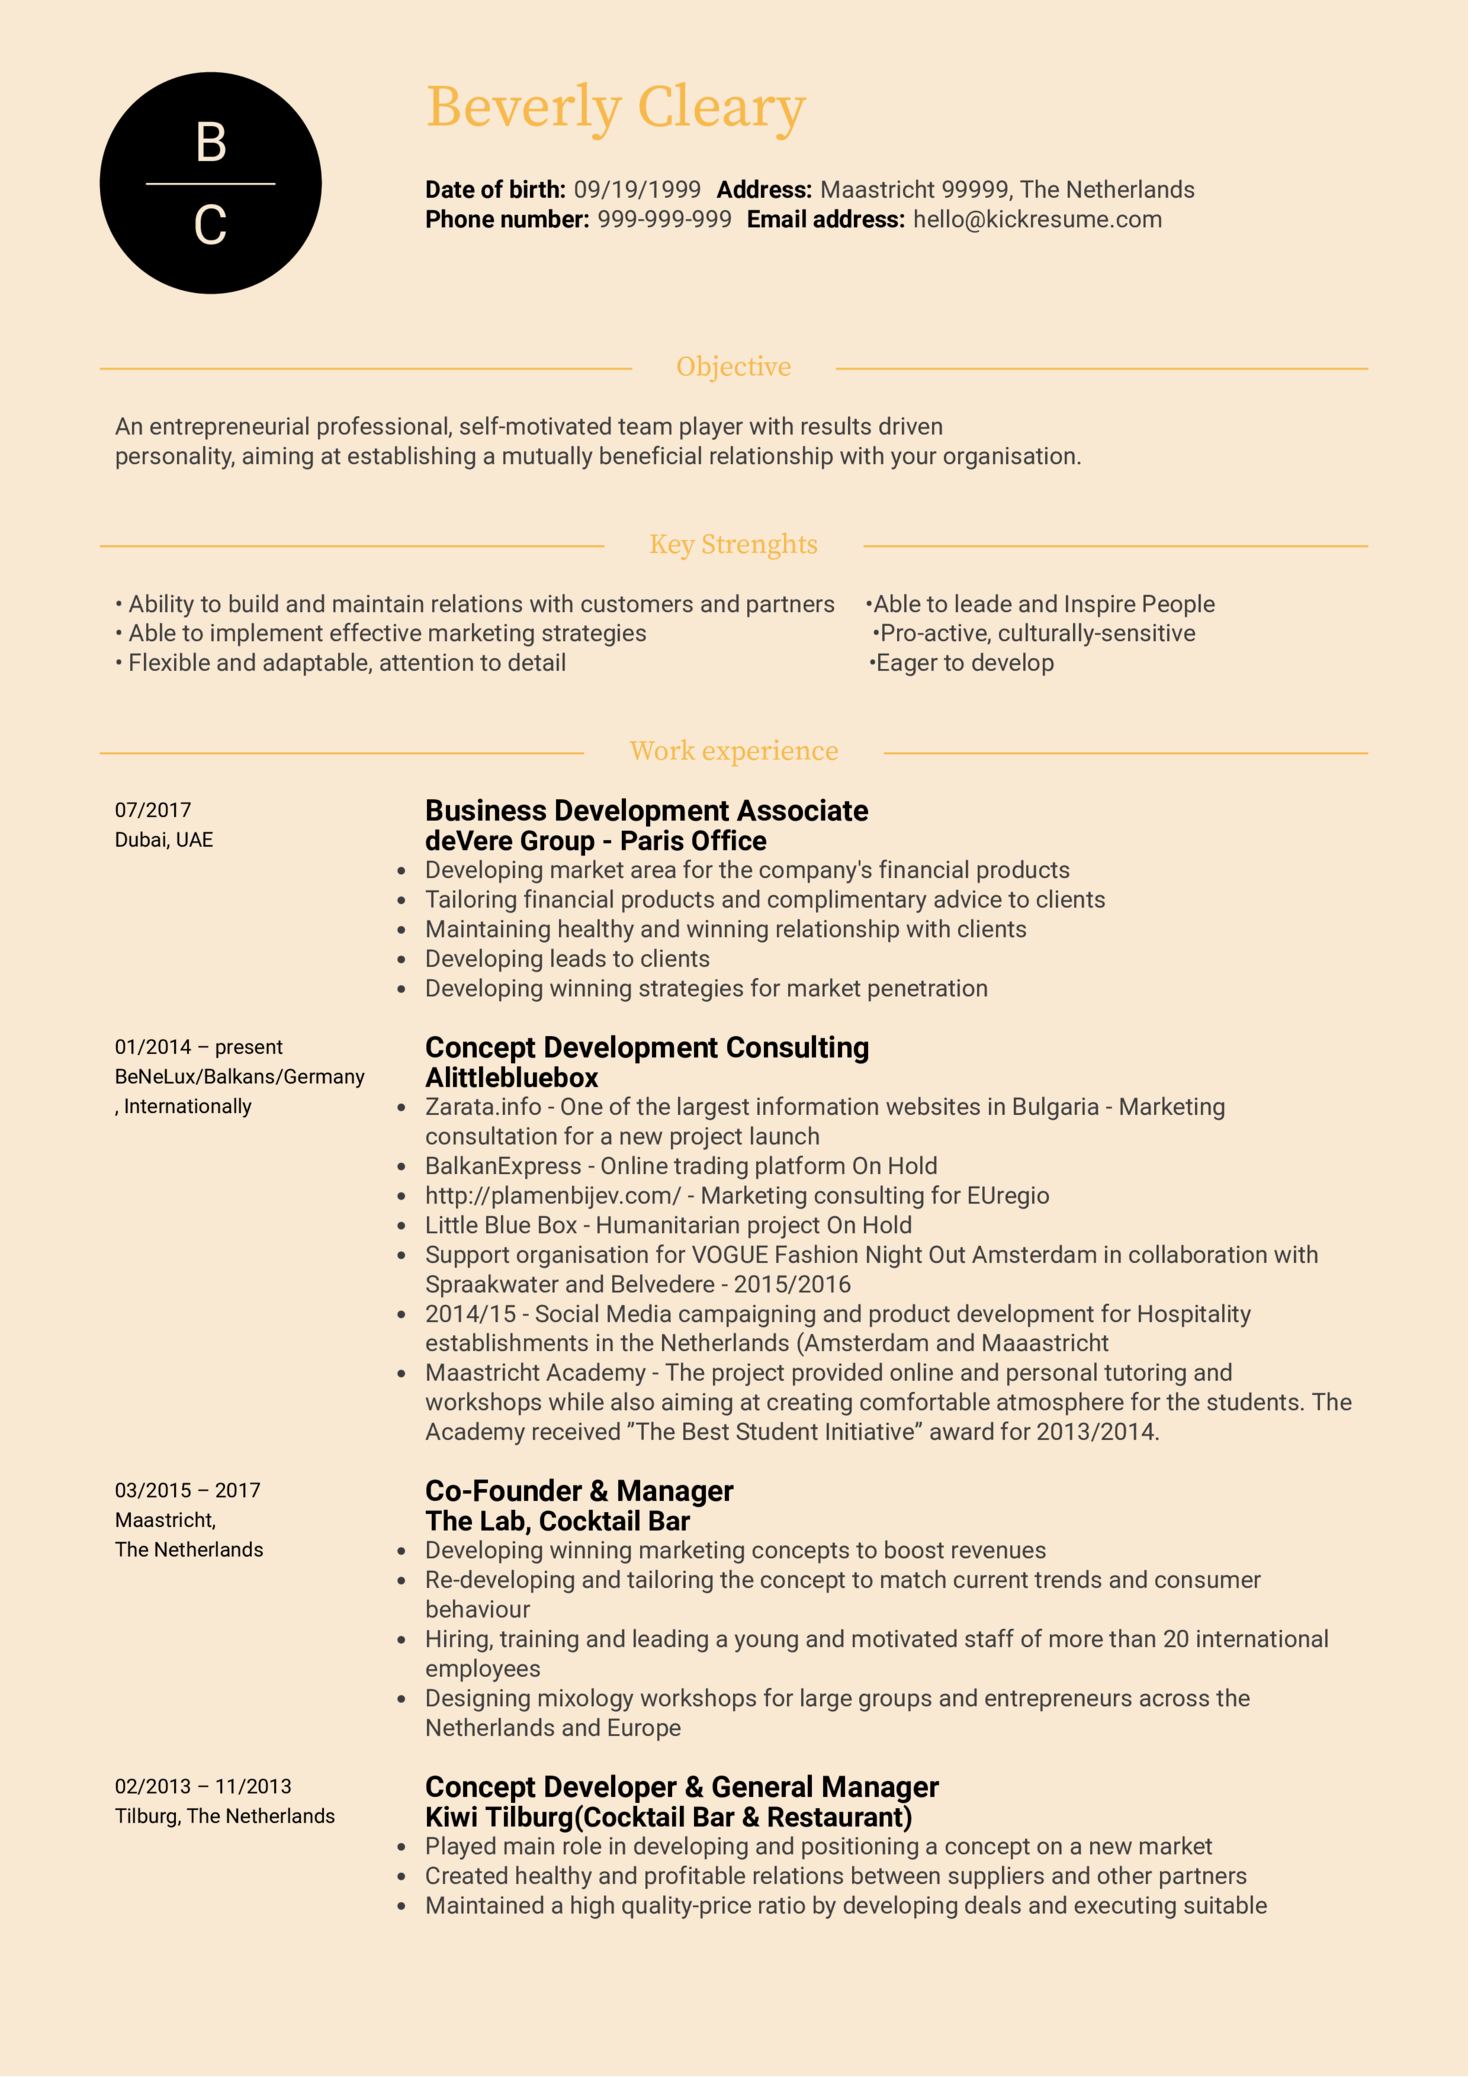 Marketing Manager Resume Sample (Part 1)